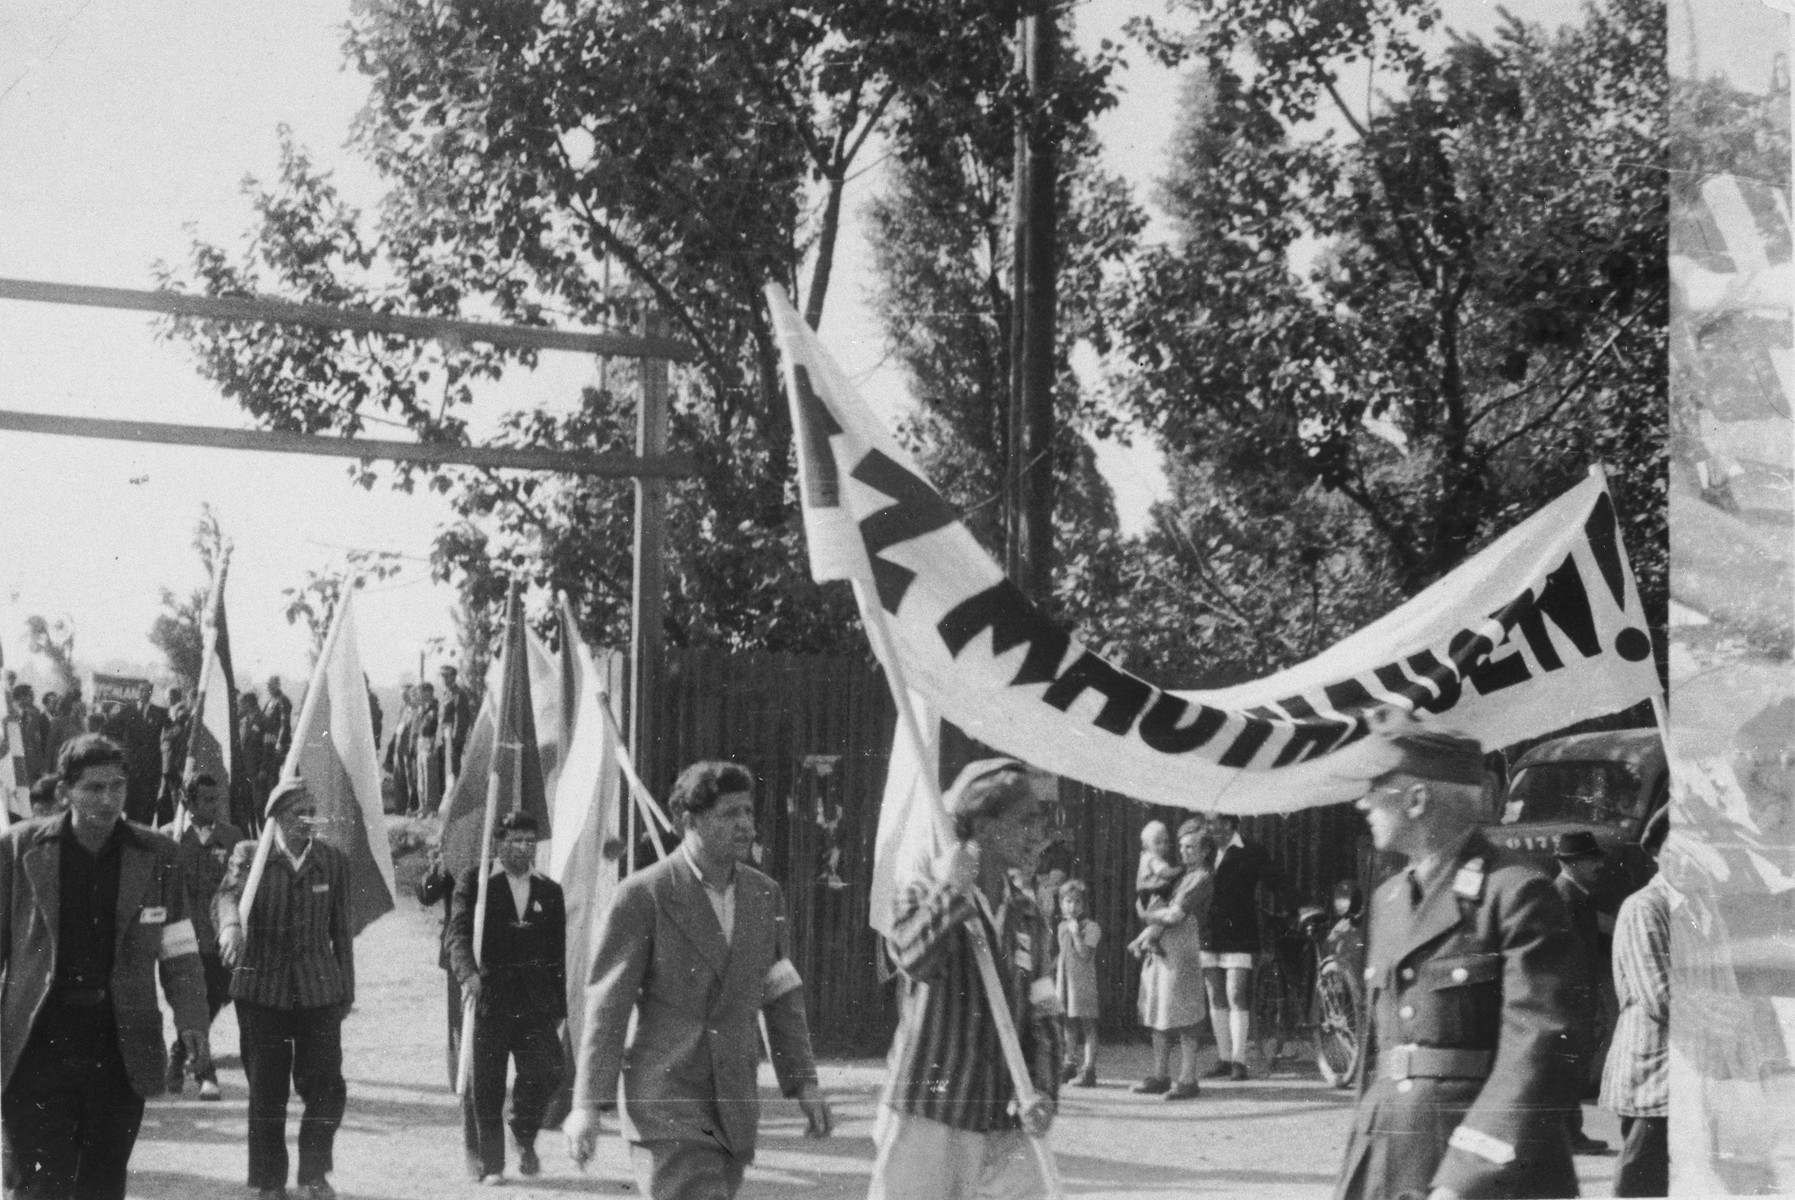 Jewish DPs march with banners and flags in the Bindermichl displaced persons camp to commemorate the Jewish victims of the Mauthausen concentration camp.